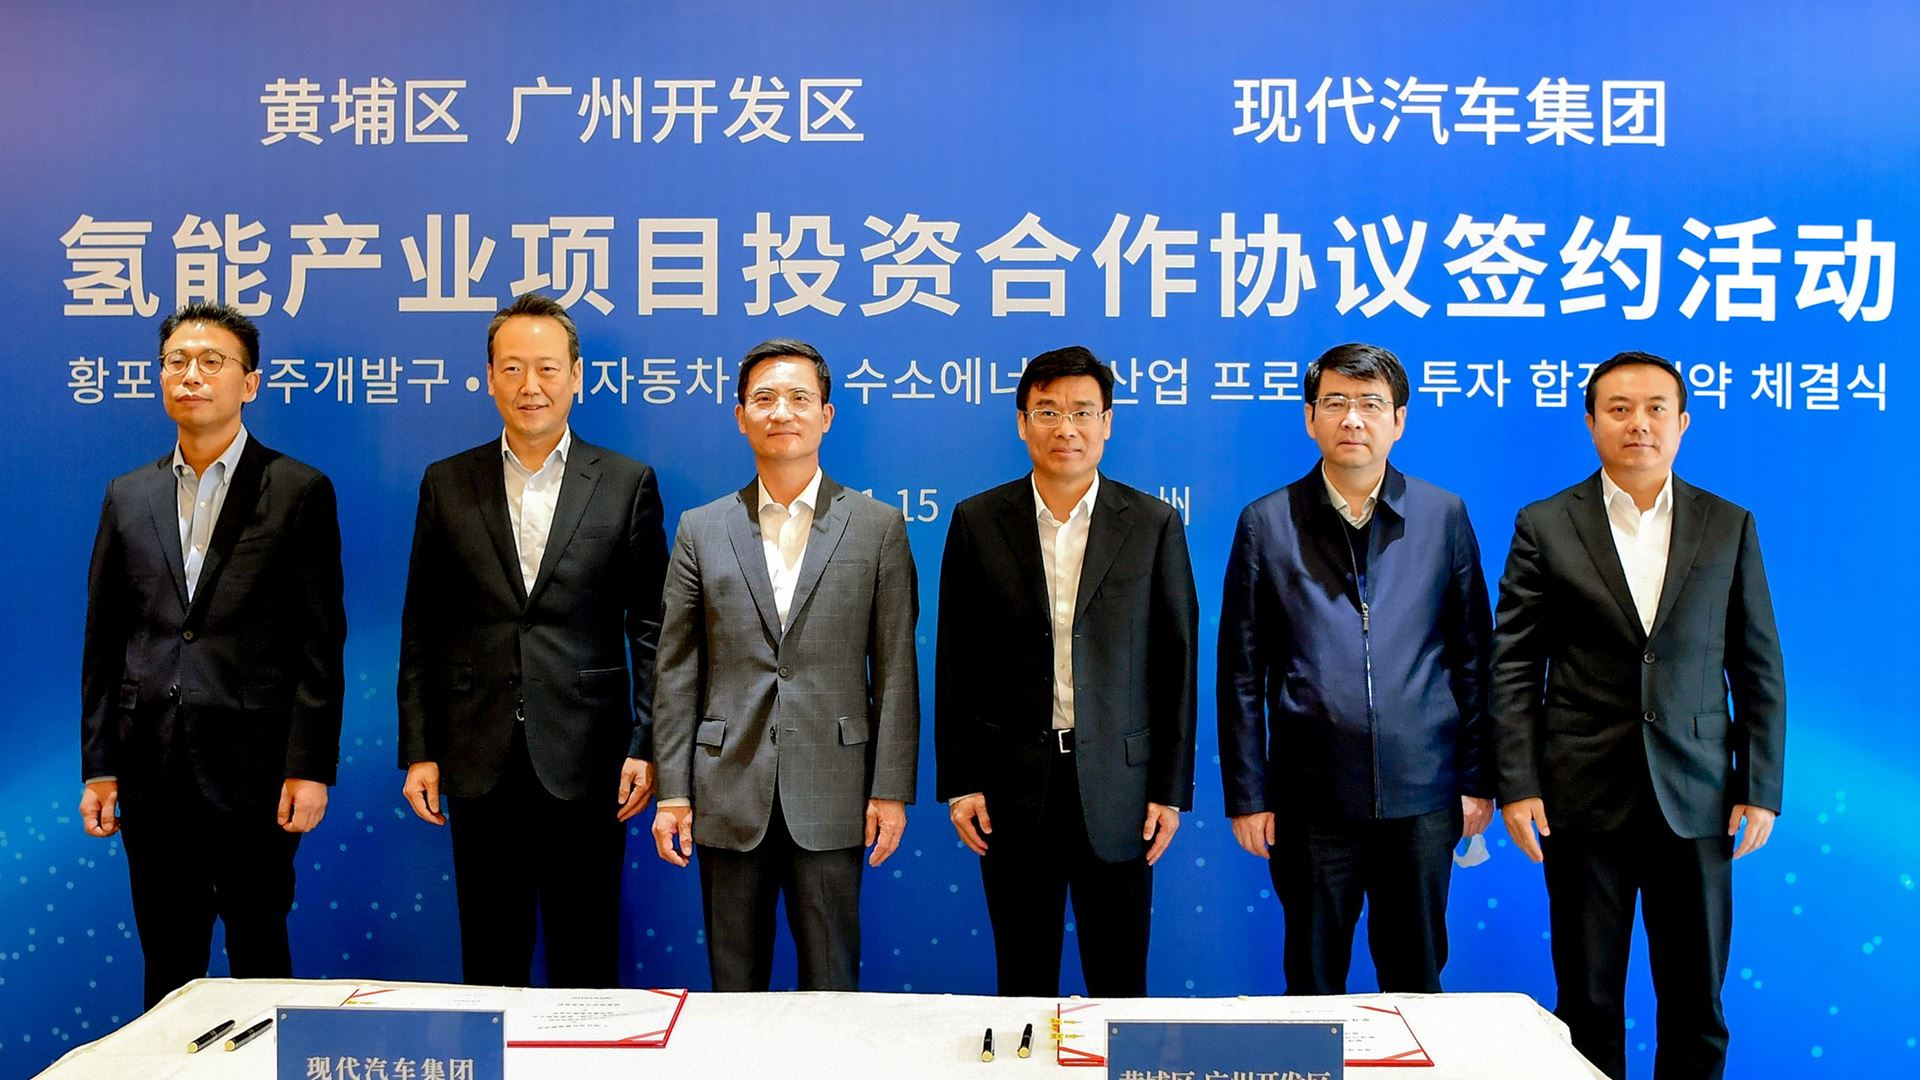 Hyundai Motor Group Advances Hydrogen Strategy with New Fuel Cell System Plant in Guangzhou - Image 1